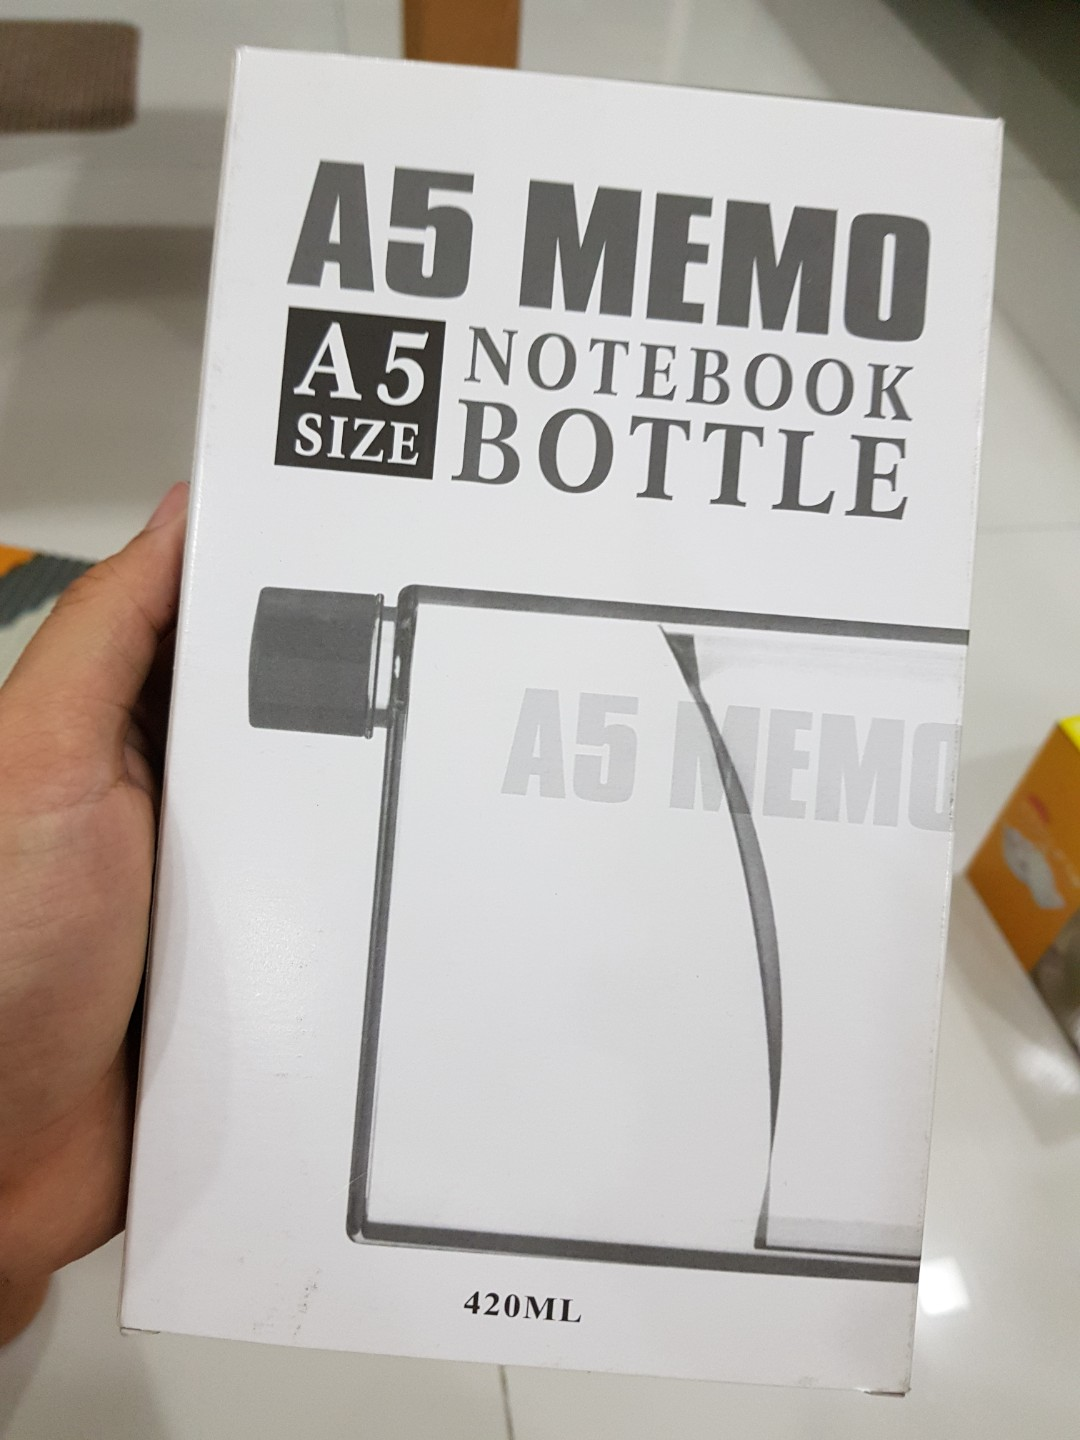 A5 Memo Notebook Bottle Home Appliances Kitchenware On Carousell Water 750ml Premium Grade Bpa Free Portable Kettle